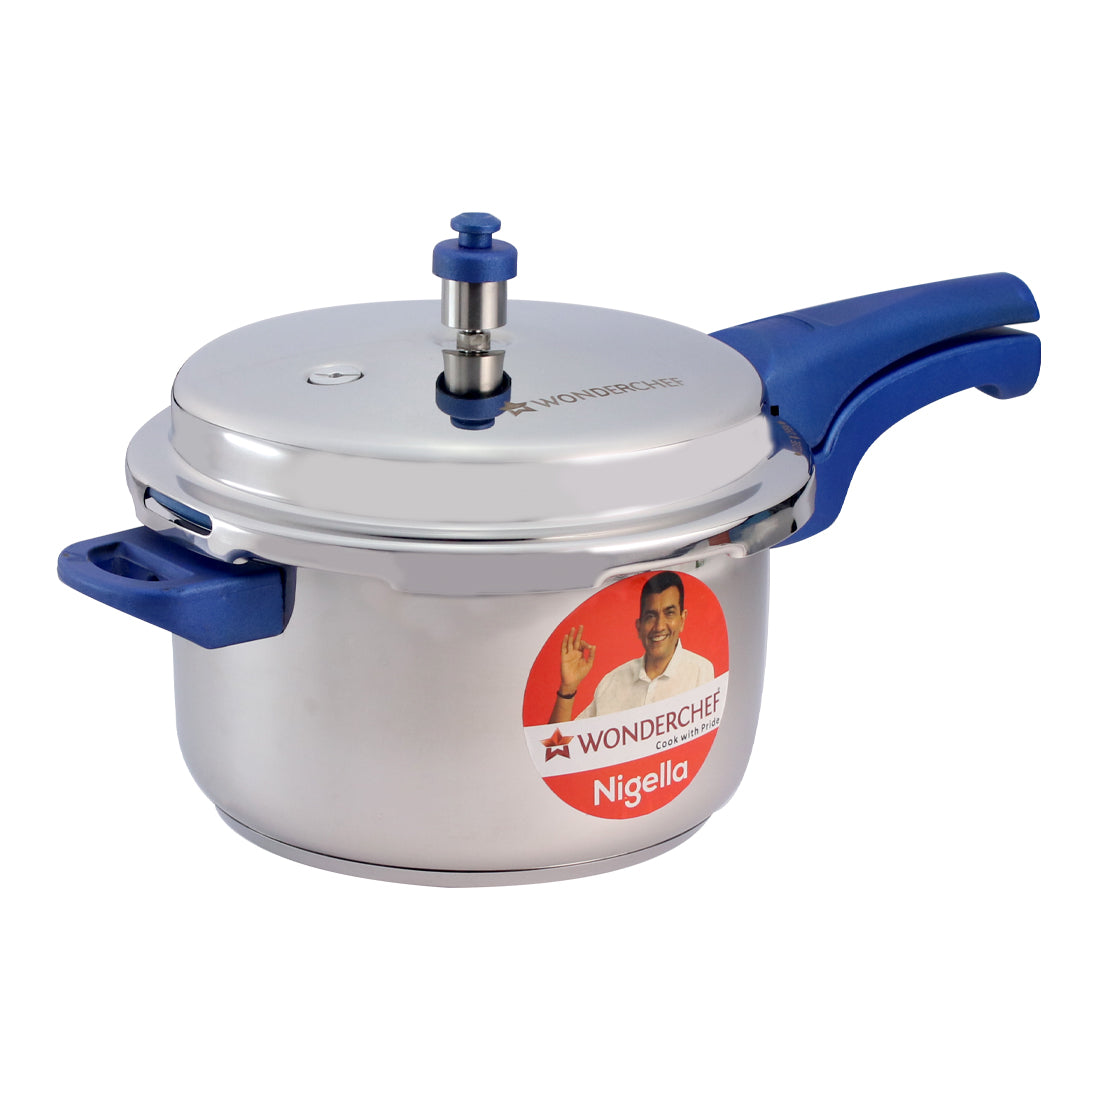 Wonderchef Nigella Pressure Cooker Blue 7L - Wonderchef